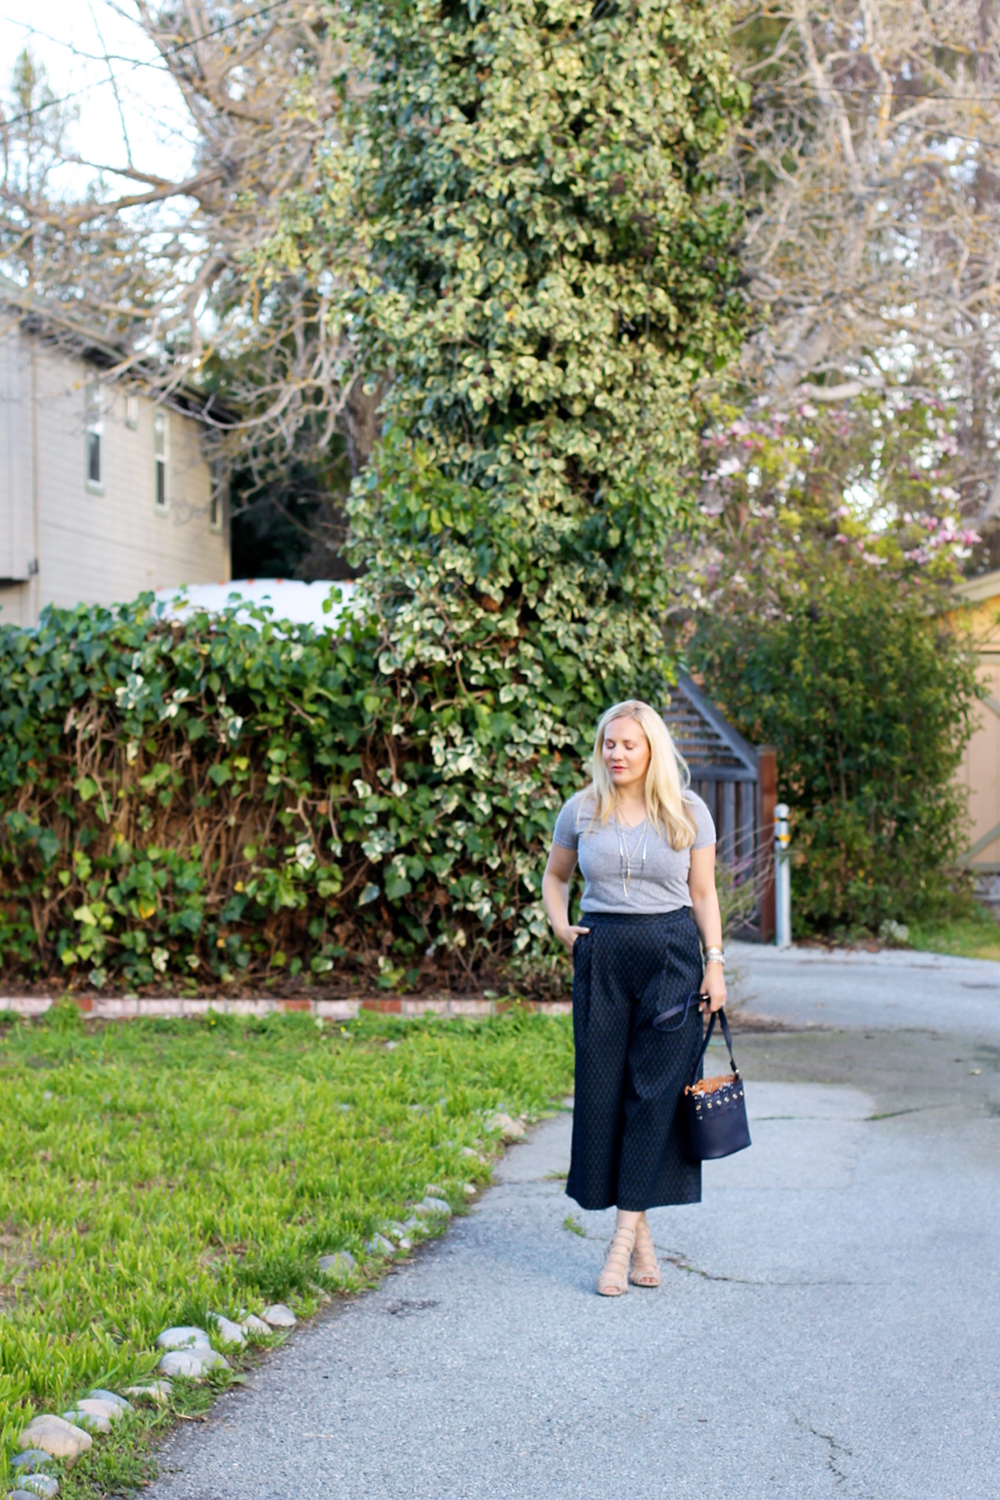 I Like You a Culotte-Culotte Trend-DVF Holly Culotte-Outfit Inspiration-Have Need Want 5